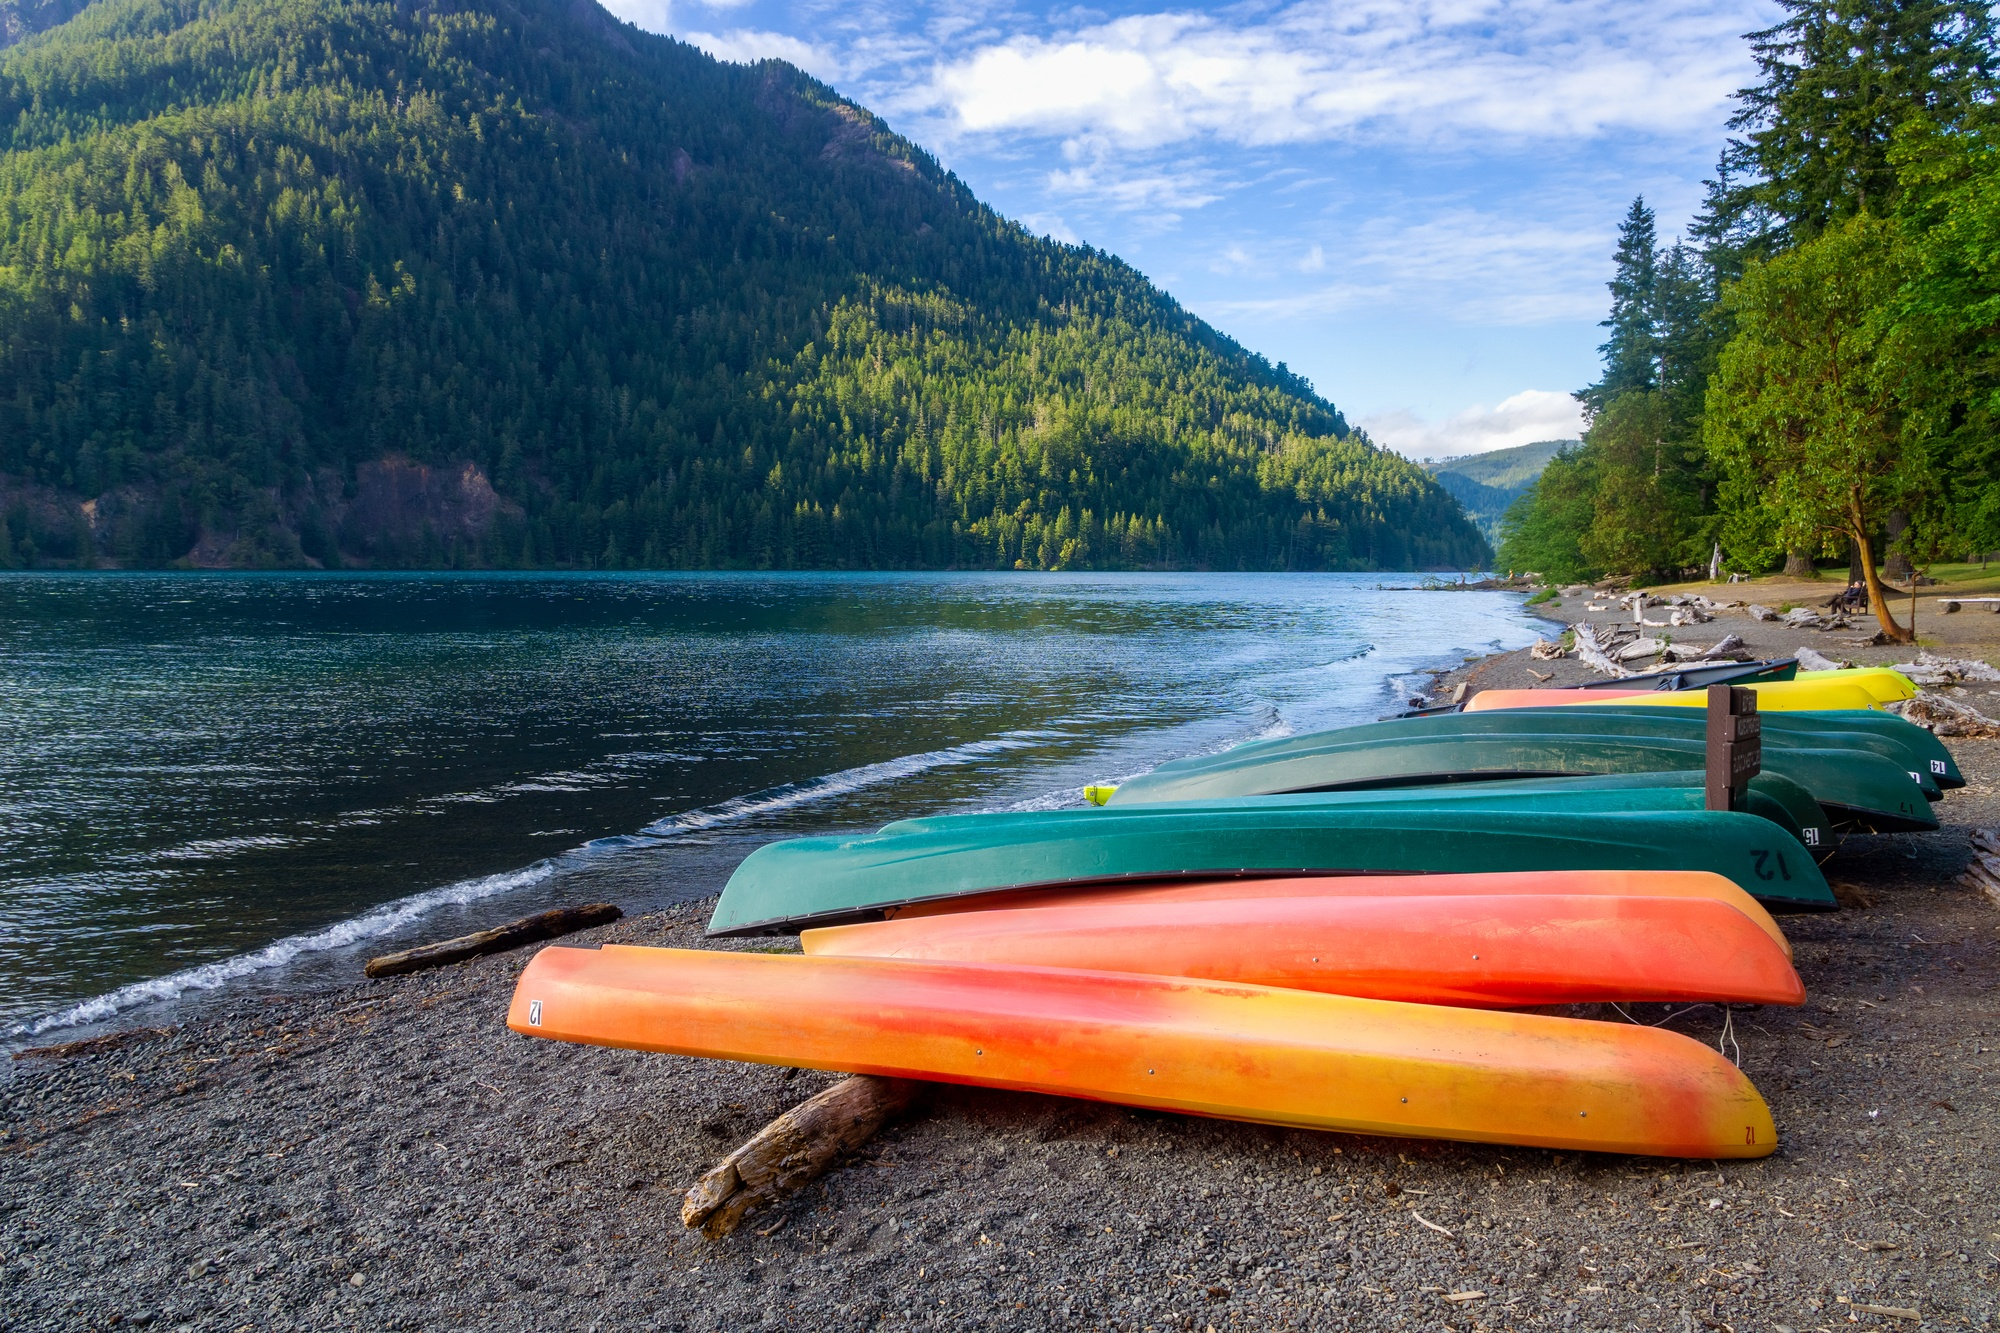 Kayaks on the shore of Lake Crescent